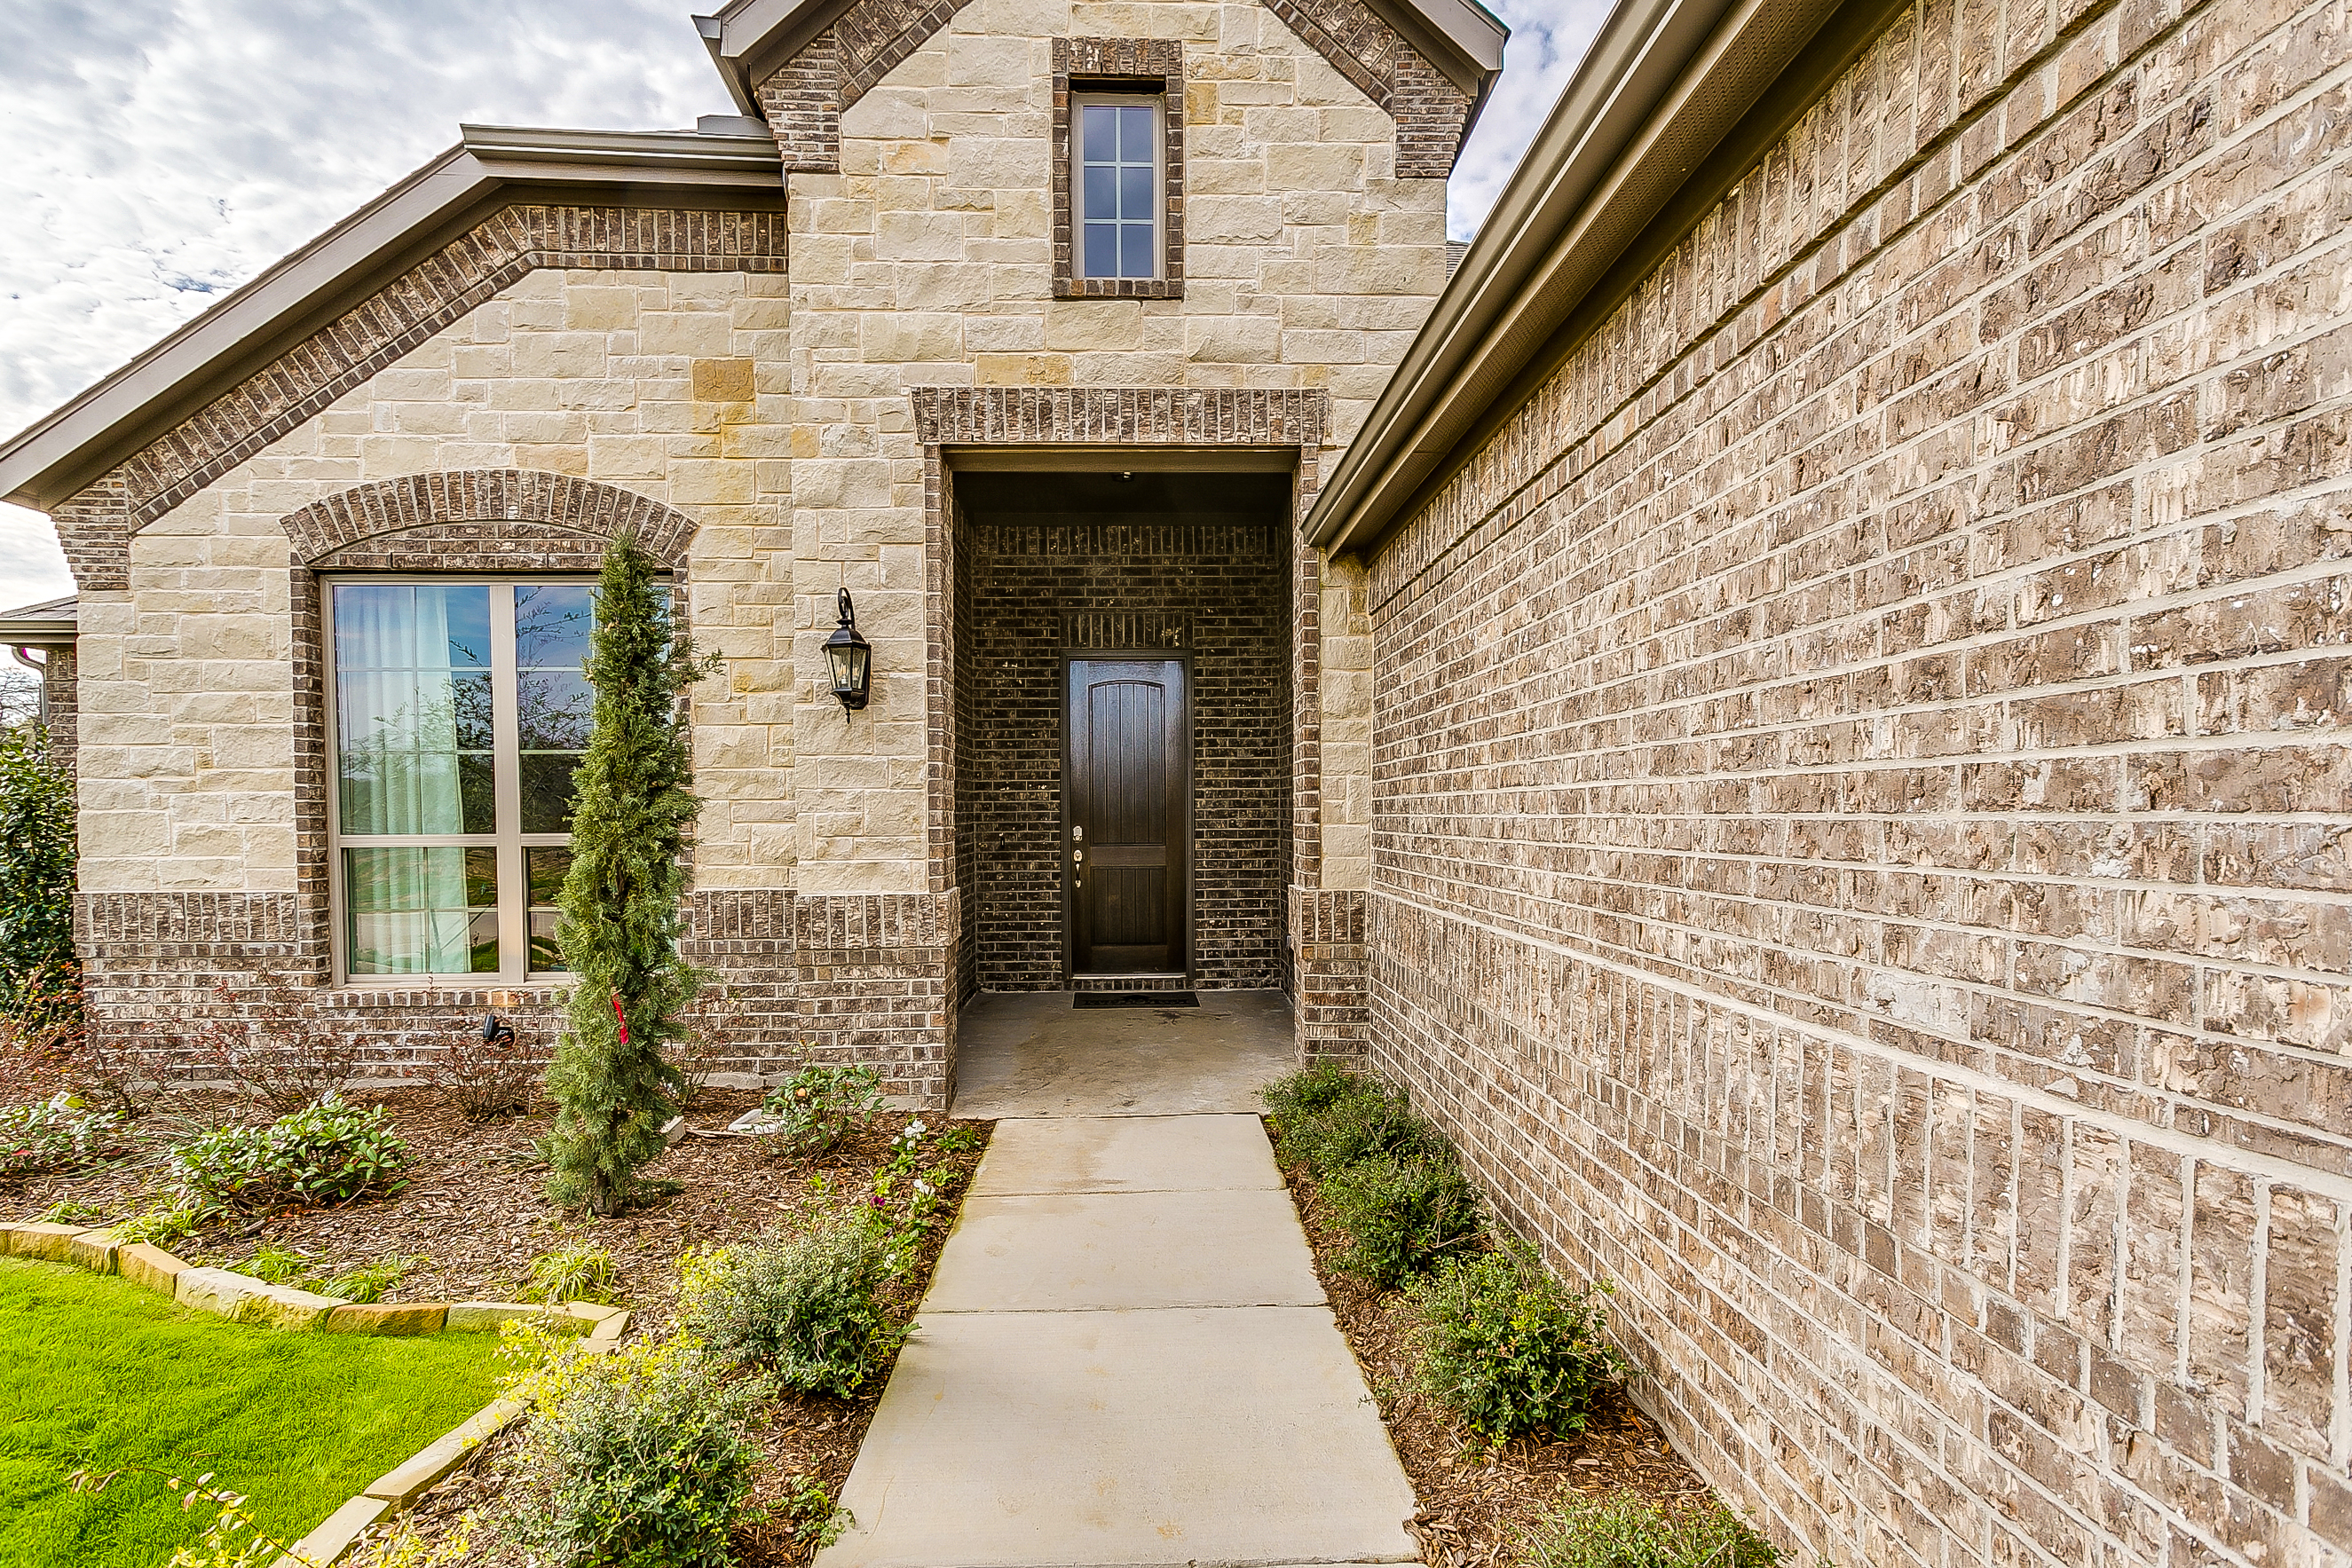 1913 Silver Falls - New Home for Sale in Burleson - 4